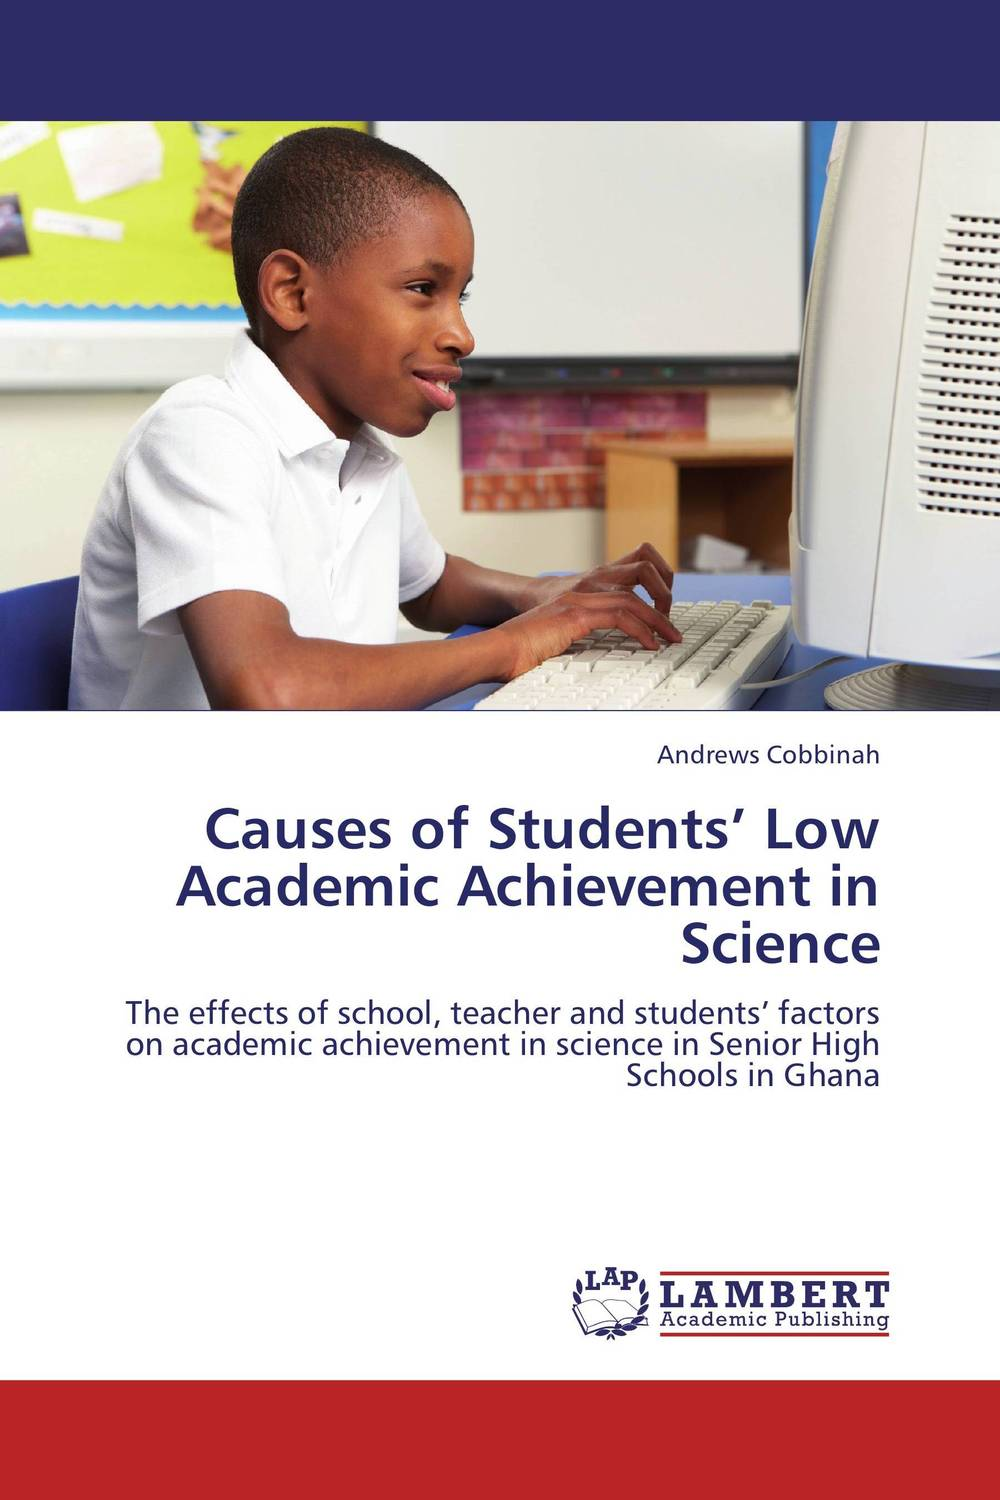 Causes of Students' Low Academic Achievement in Science